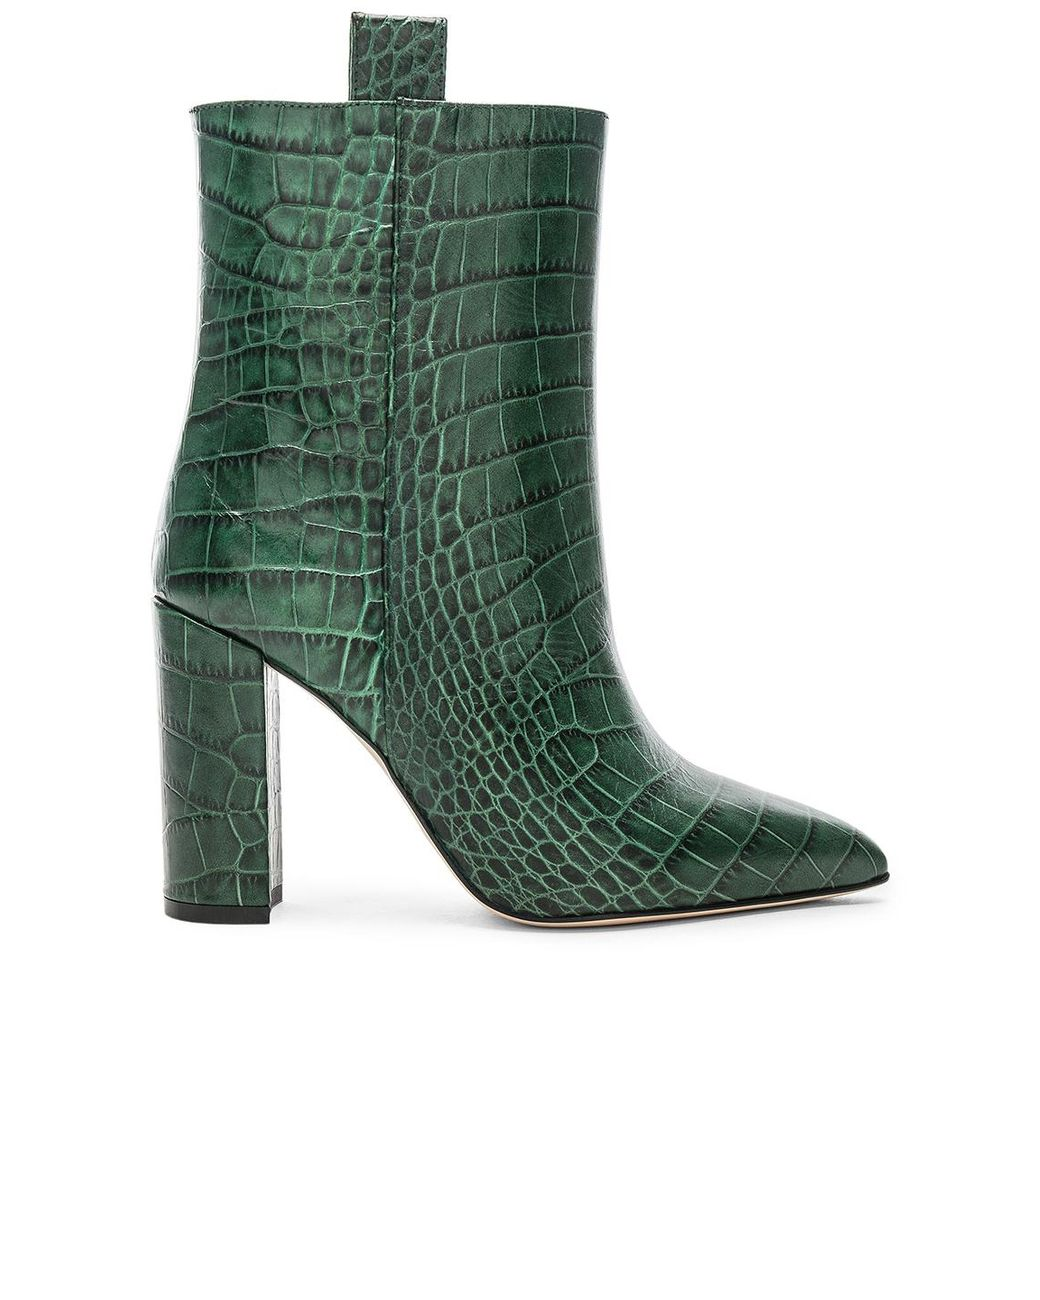 online store 8b5a2 e2389 Women's Green Ankle Boot